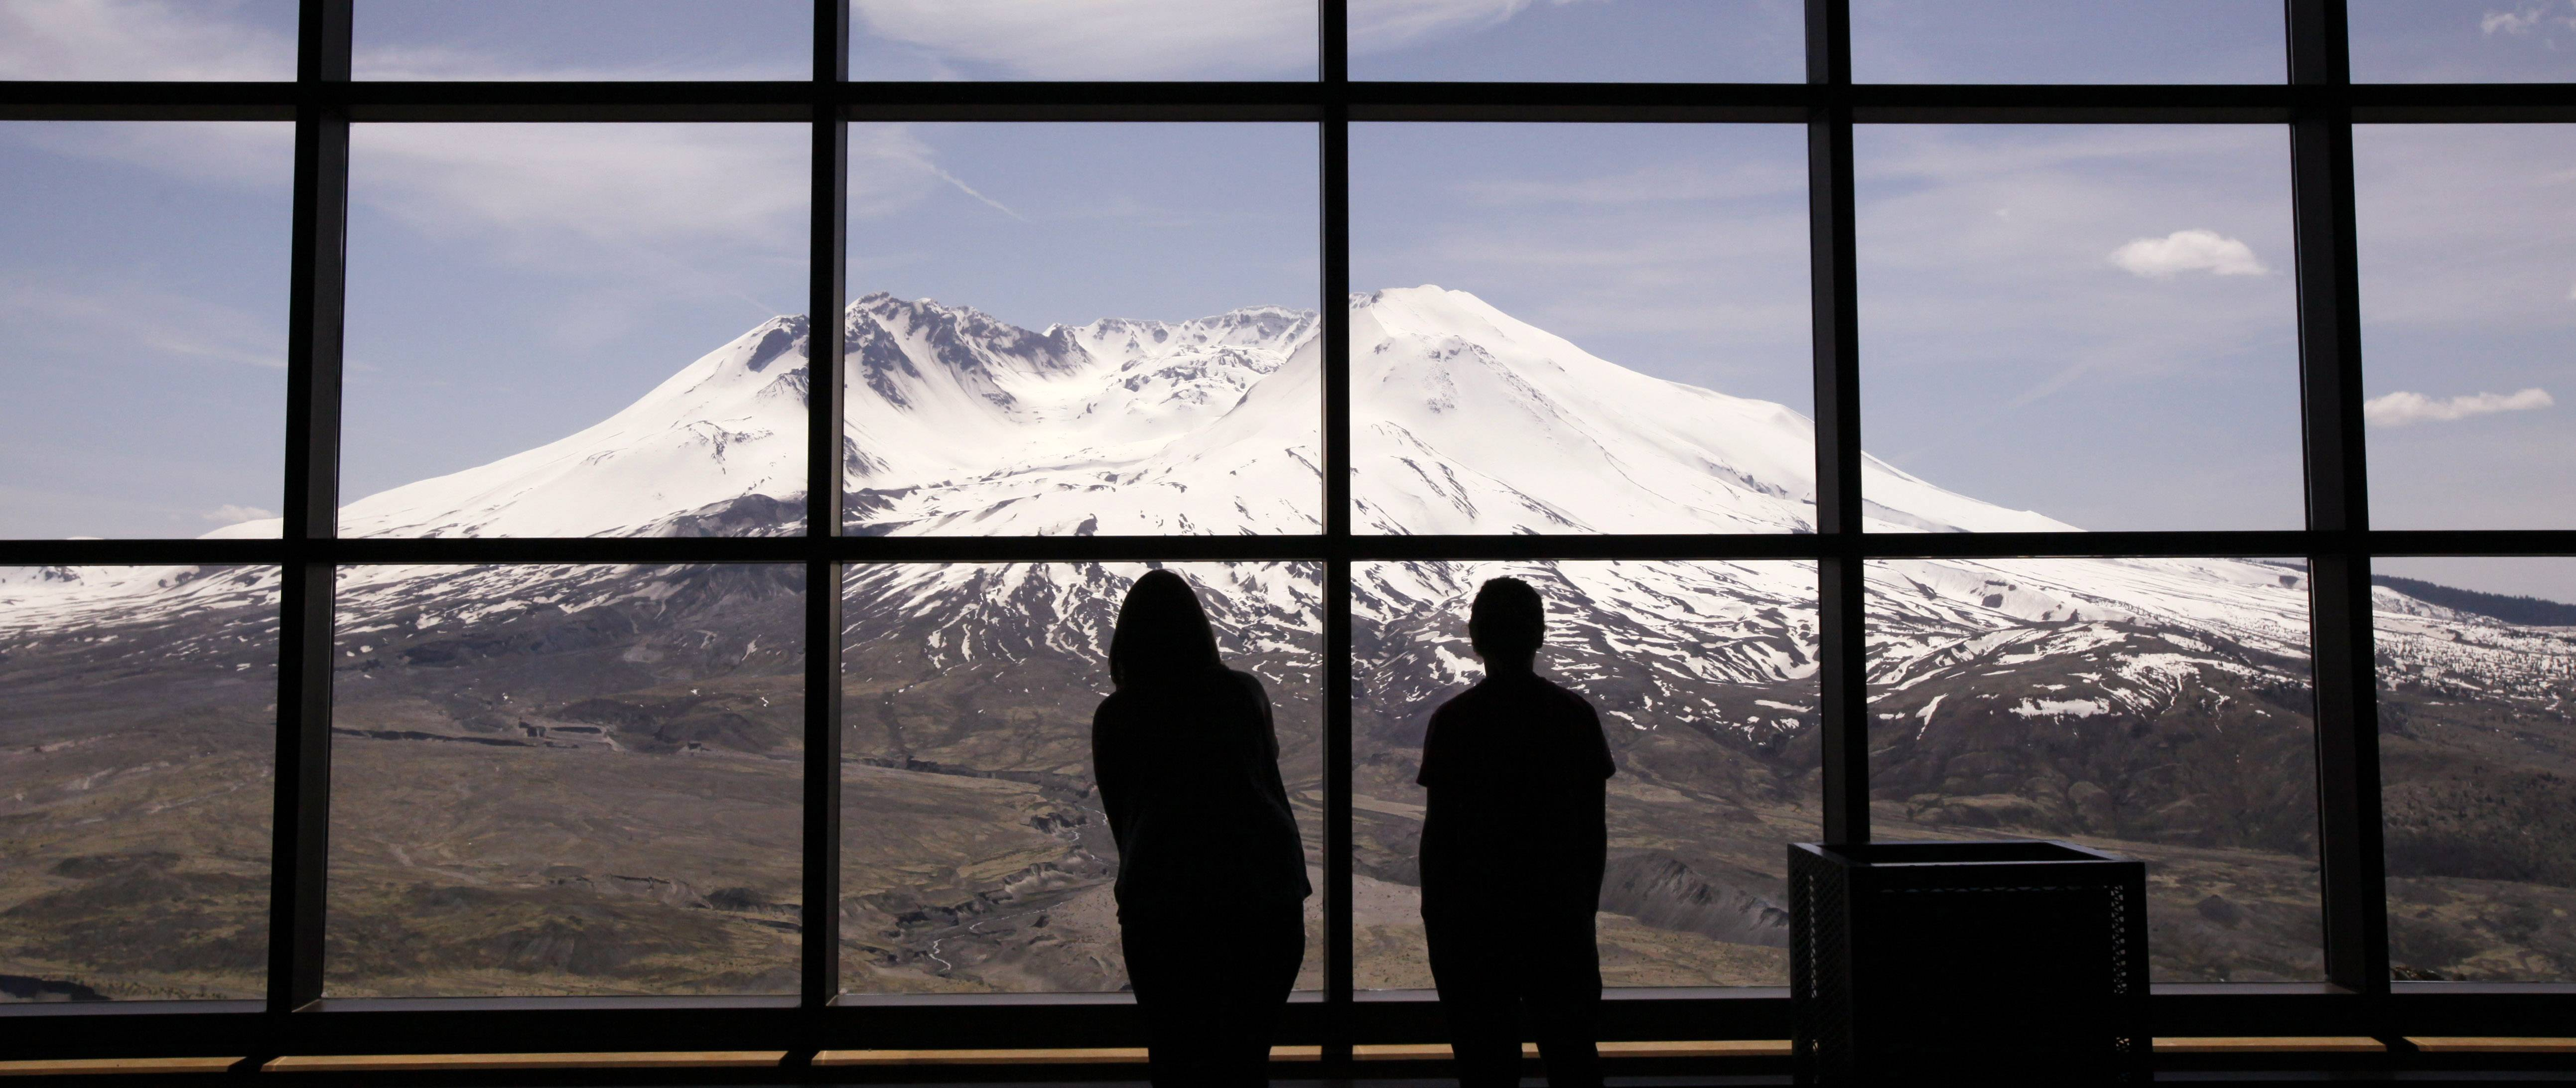 a look at the volcano activities in mount st helen Soon after the blast, congress created the 110,000-acre mount st helens national volcanic monument that gave scientists a rare chance to sit back and watch nature proceed at its own course undisturbed by manmade activities like logging, which altered much of the area surrounding the site.